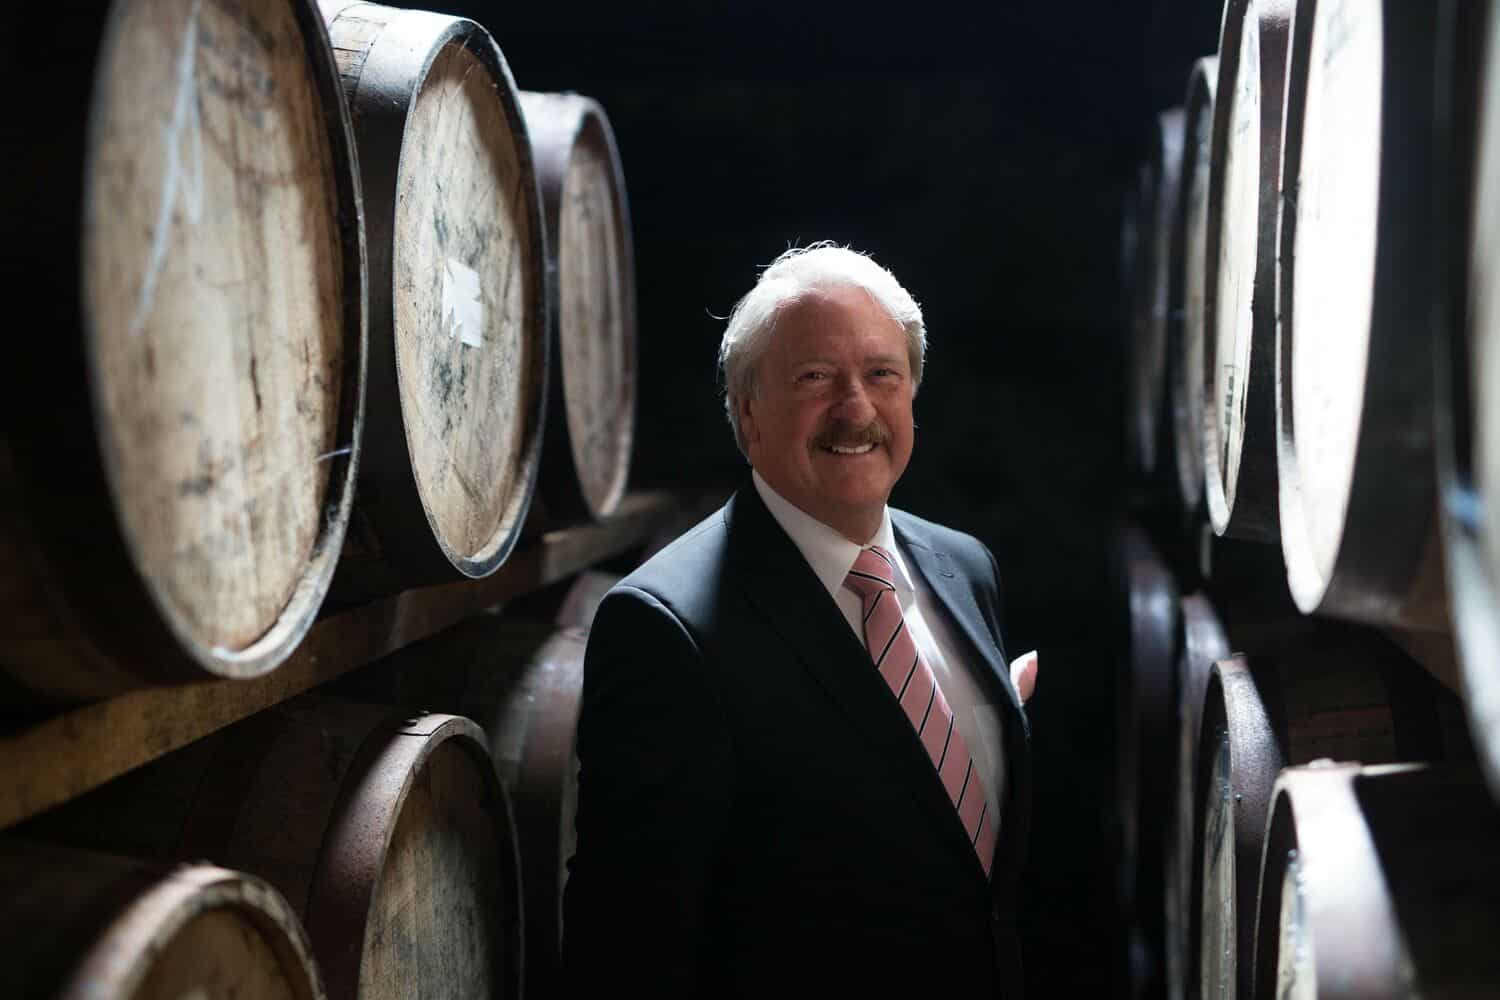 Richard Paterson celebrates 50 years ahead of once-in-a-lifetime whisky release